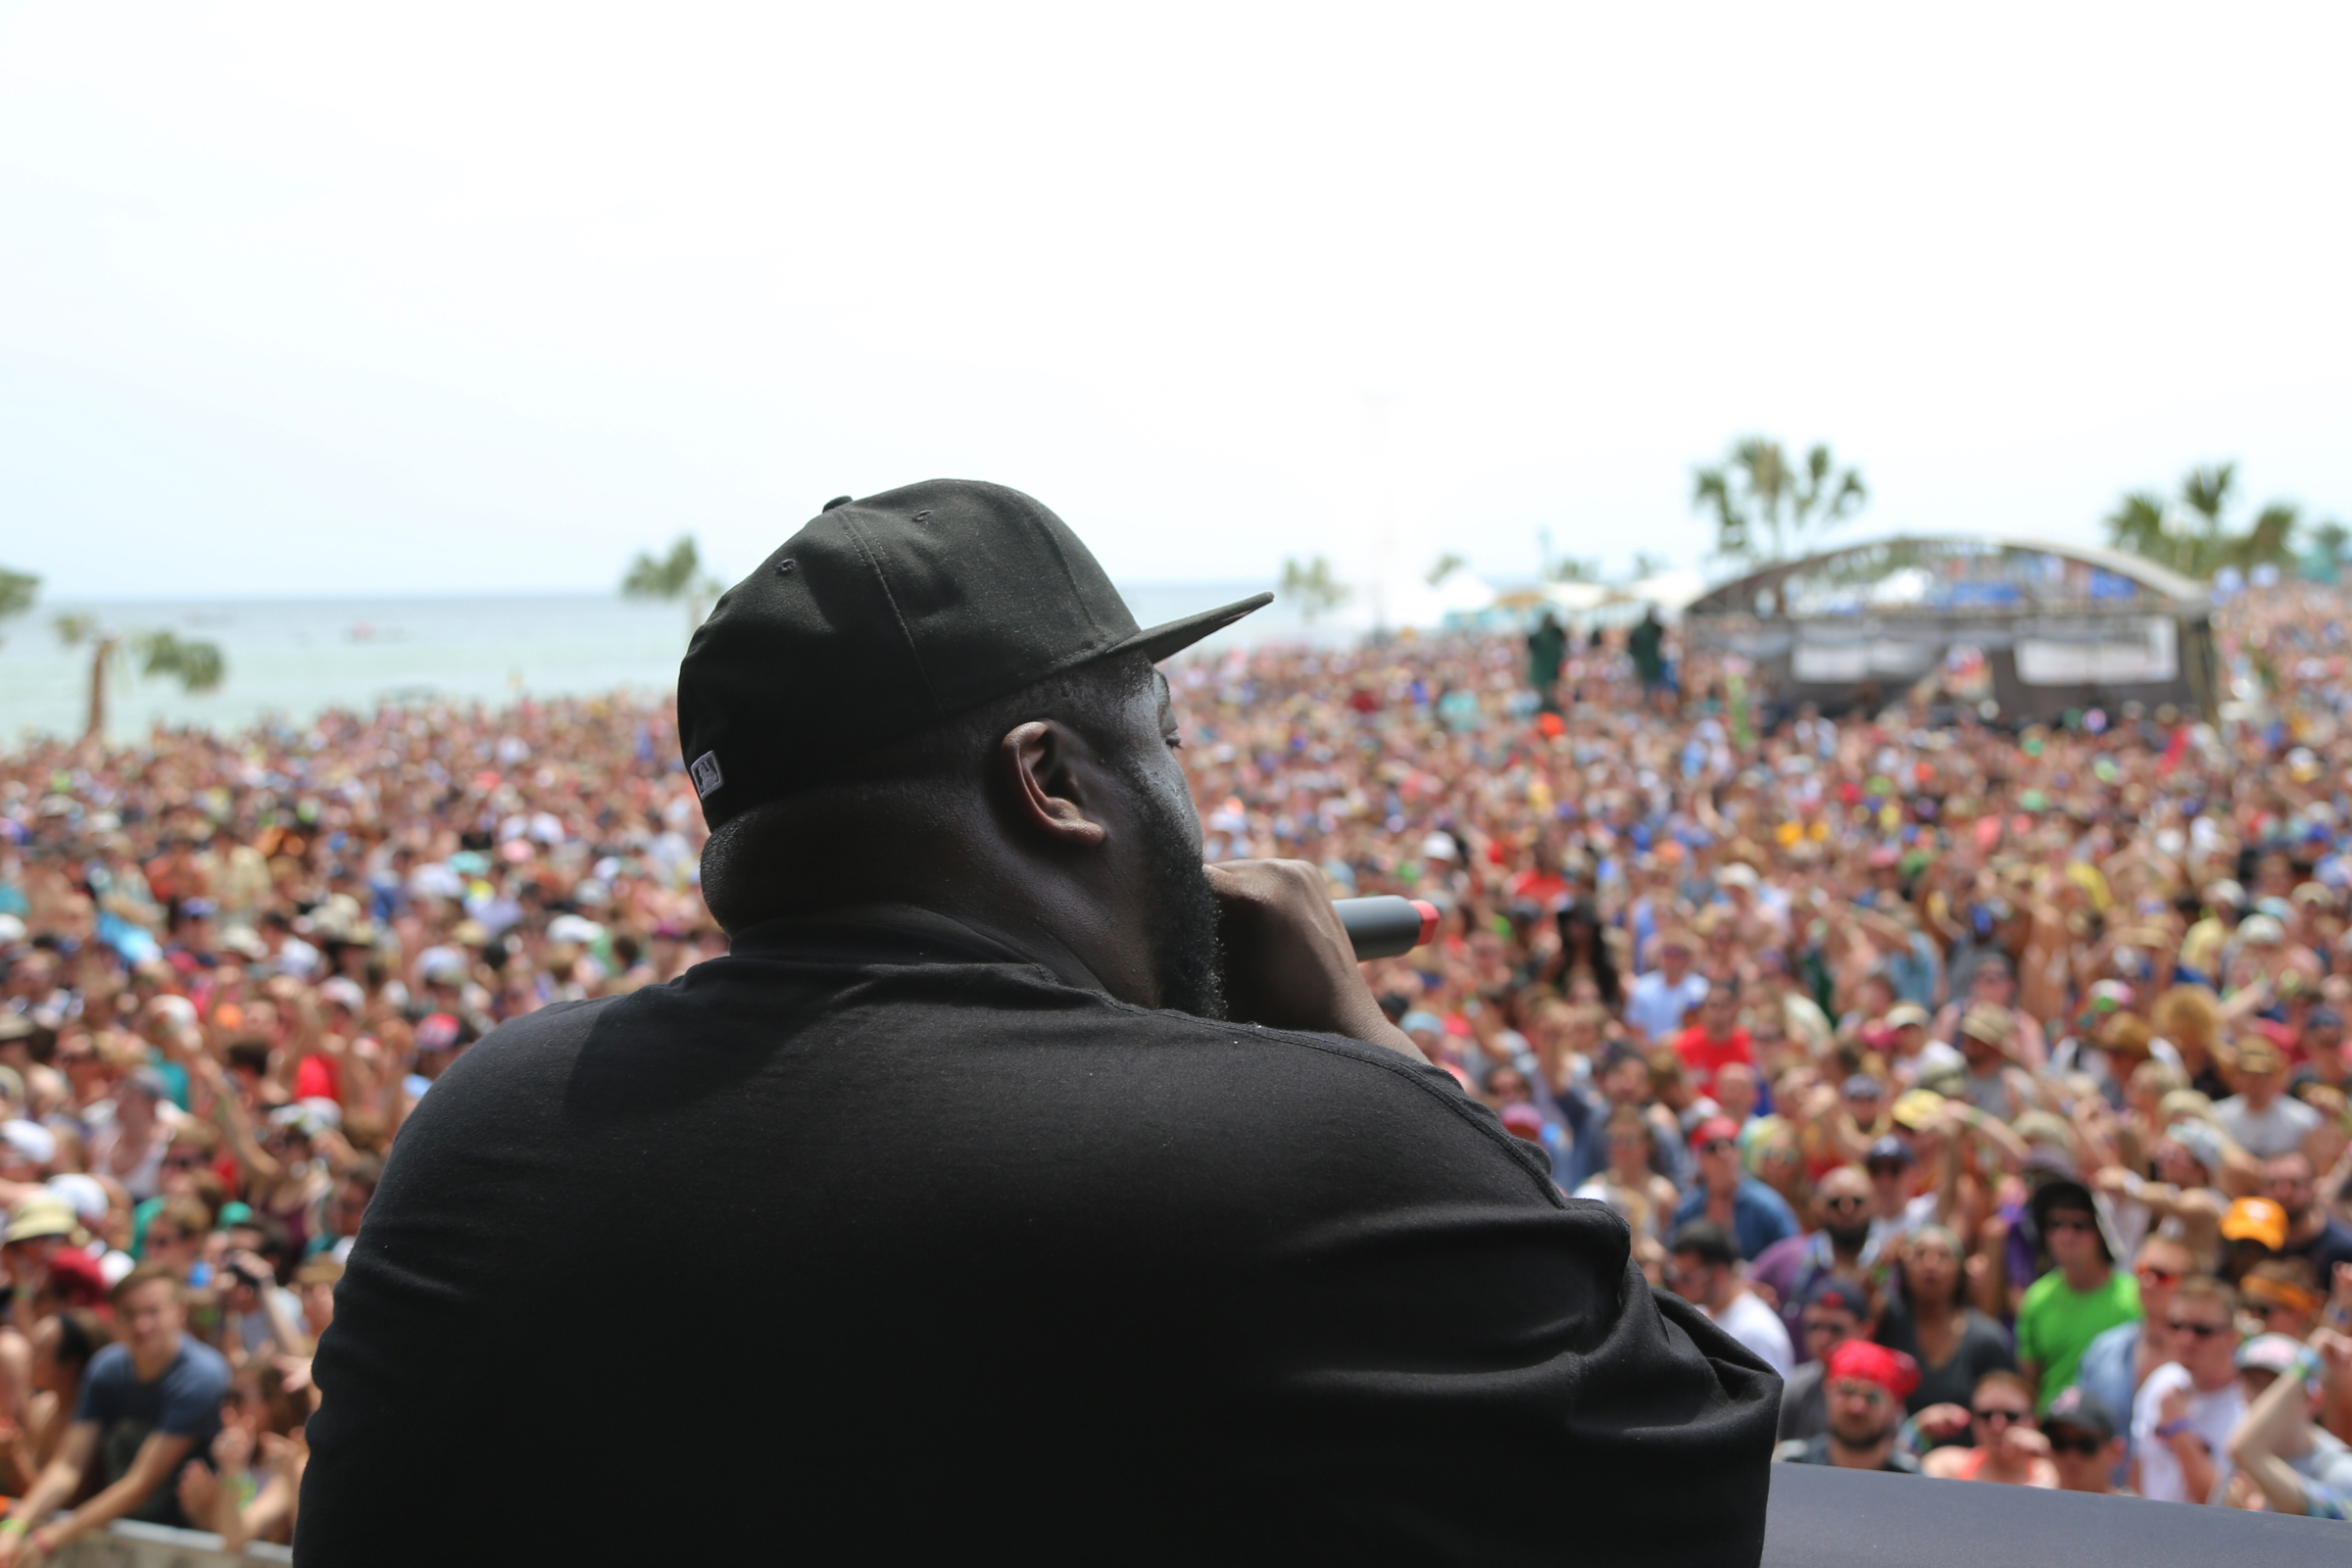 Run the Jewels at Hangout Music Festival 2016. Photo: Courtesy of Hangout Music Festival